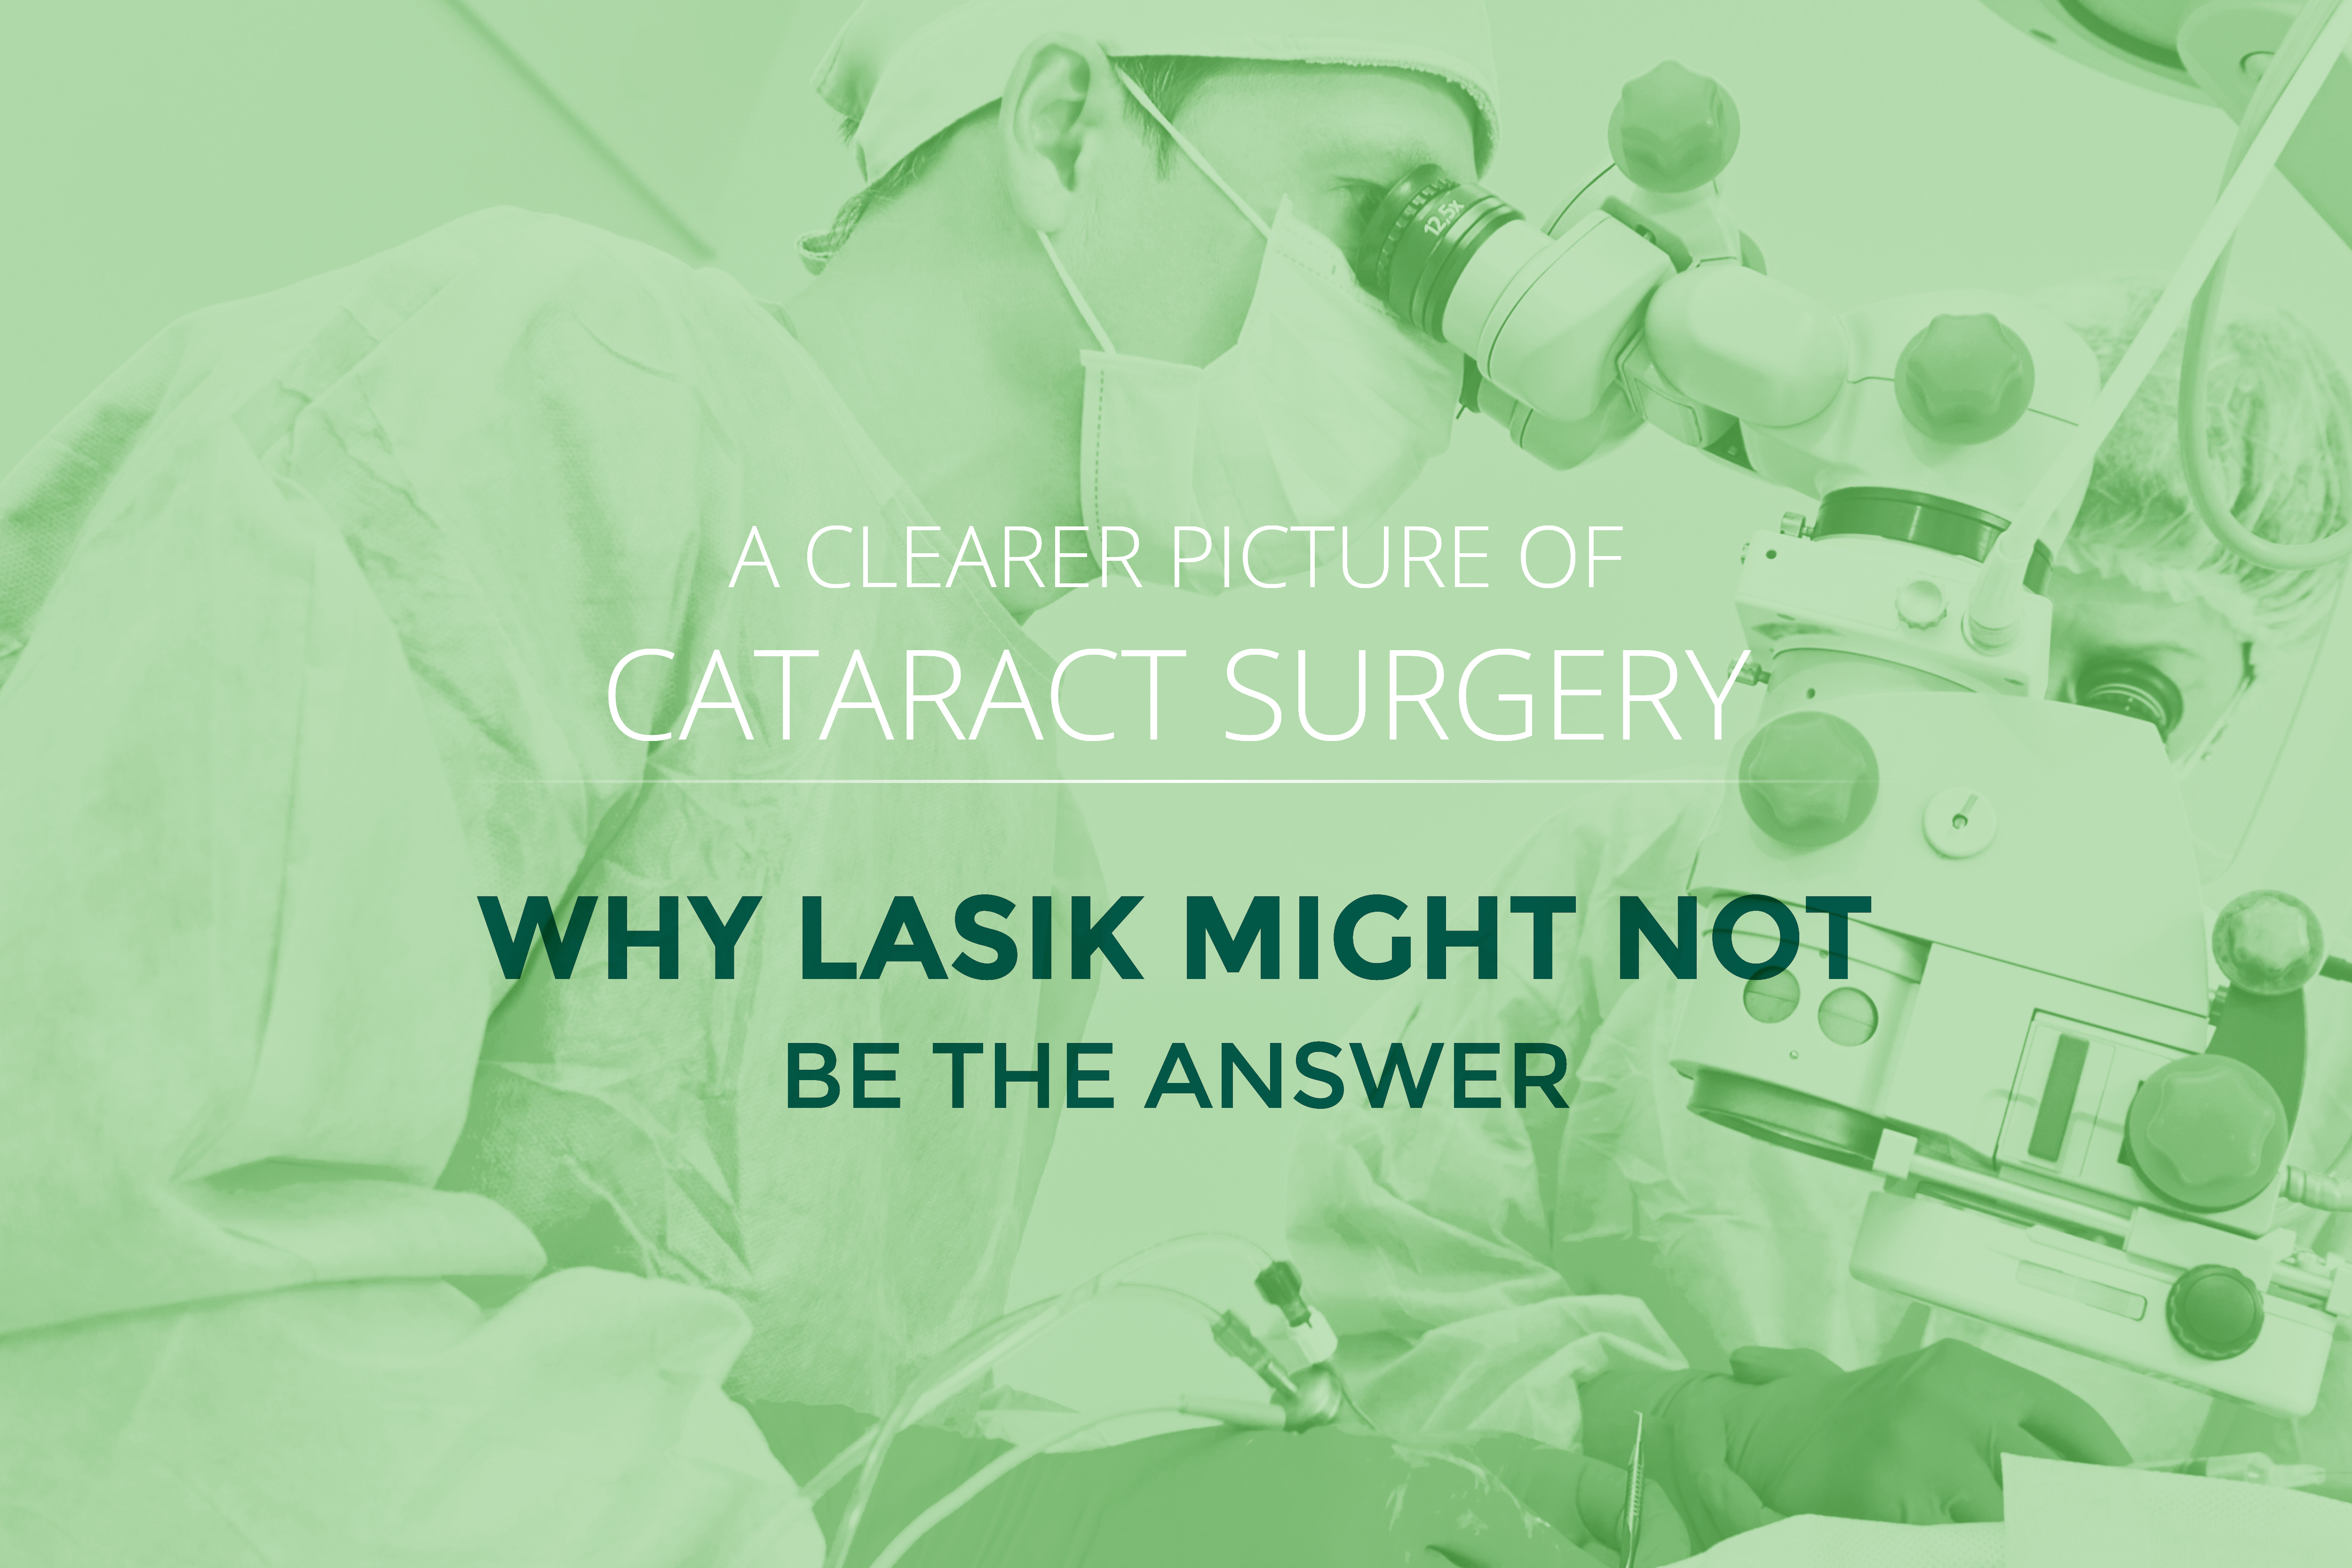 Cataract Surgery: Why Lasik Might not be the Answer